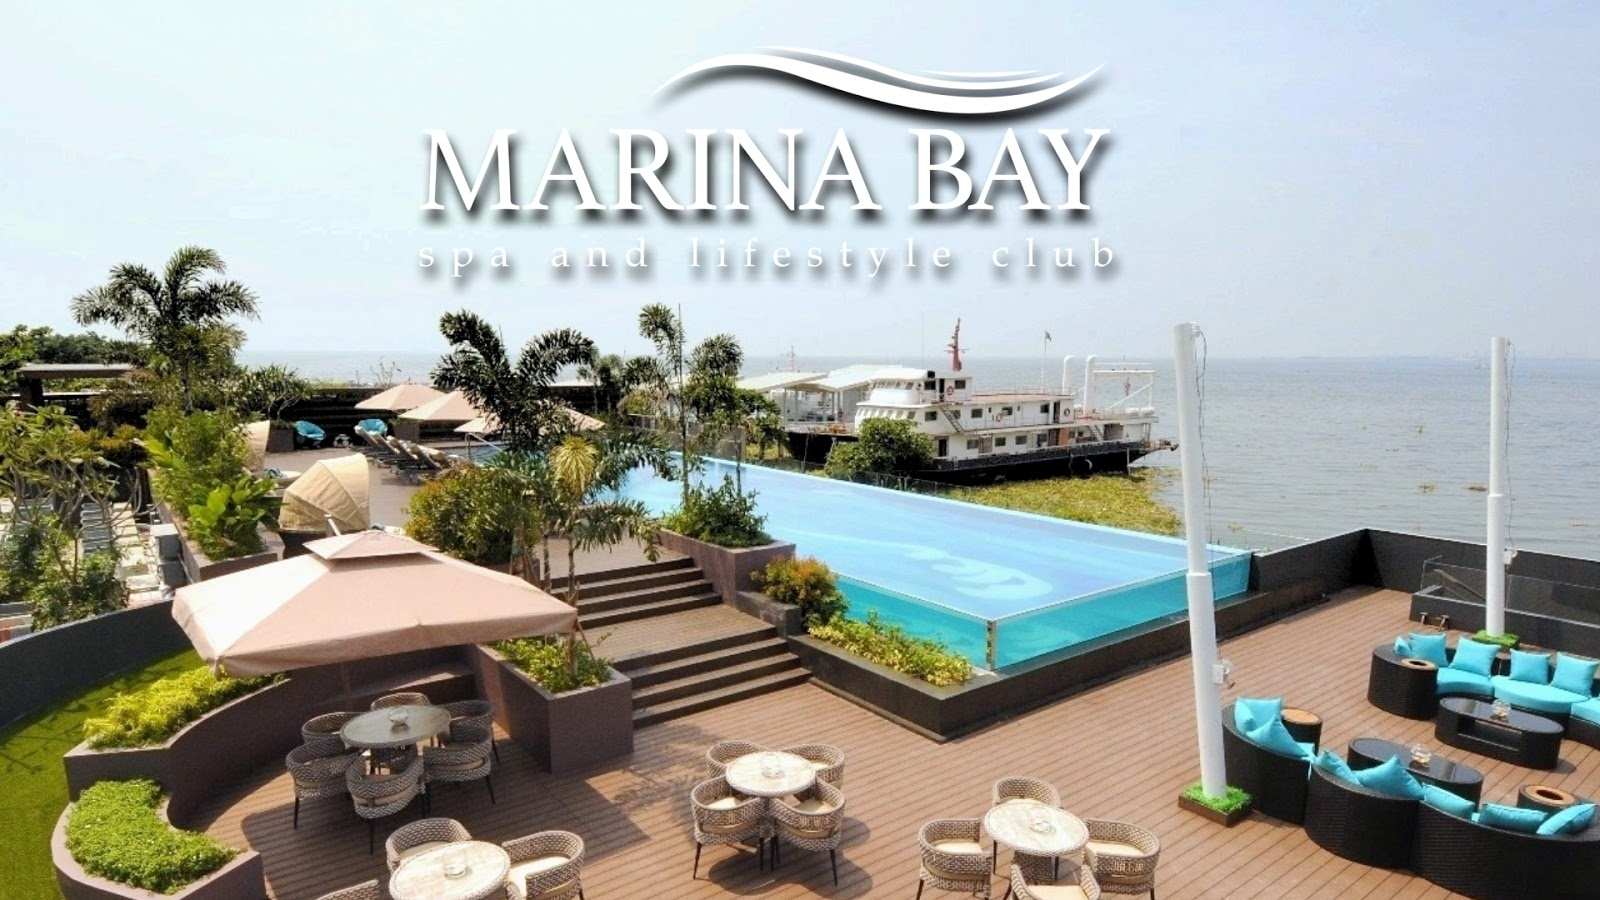 Marina Bay Spa And Lifestyle Club Philippines